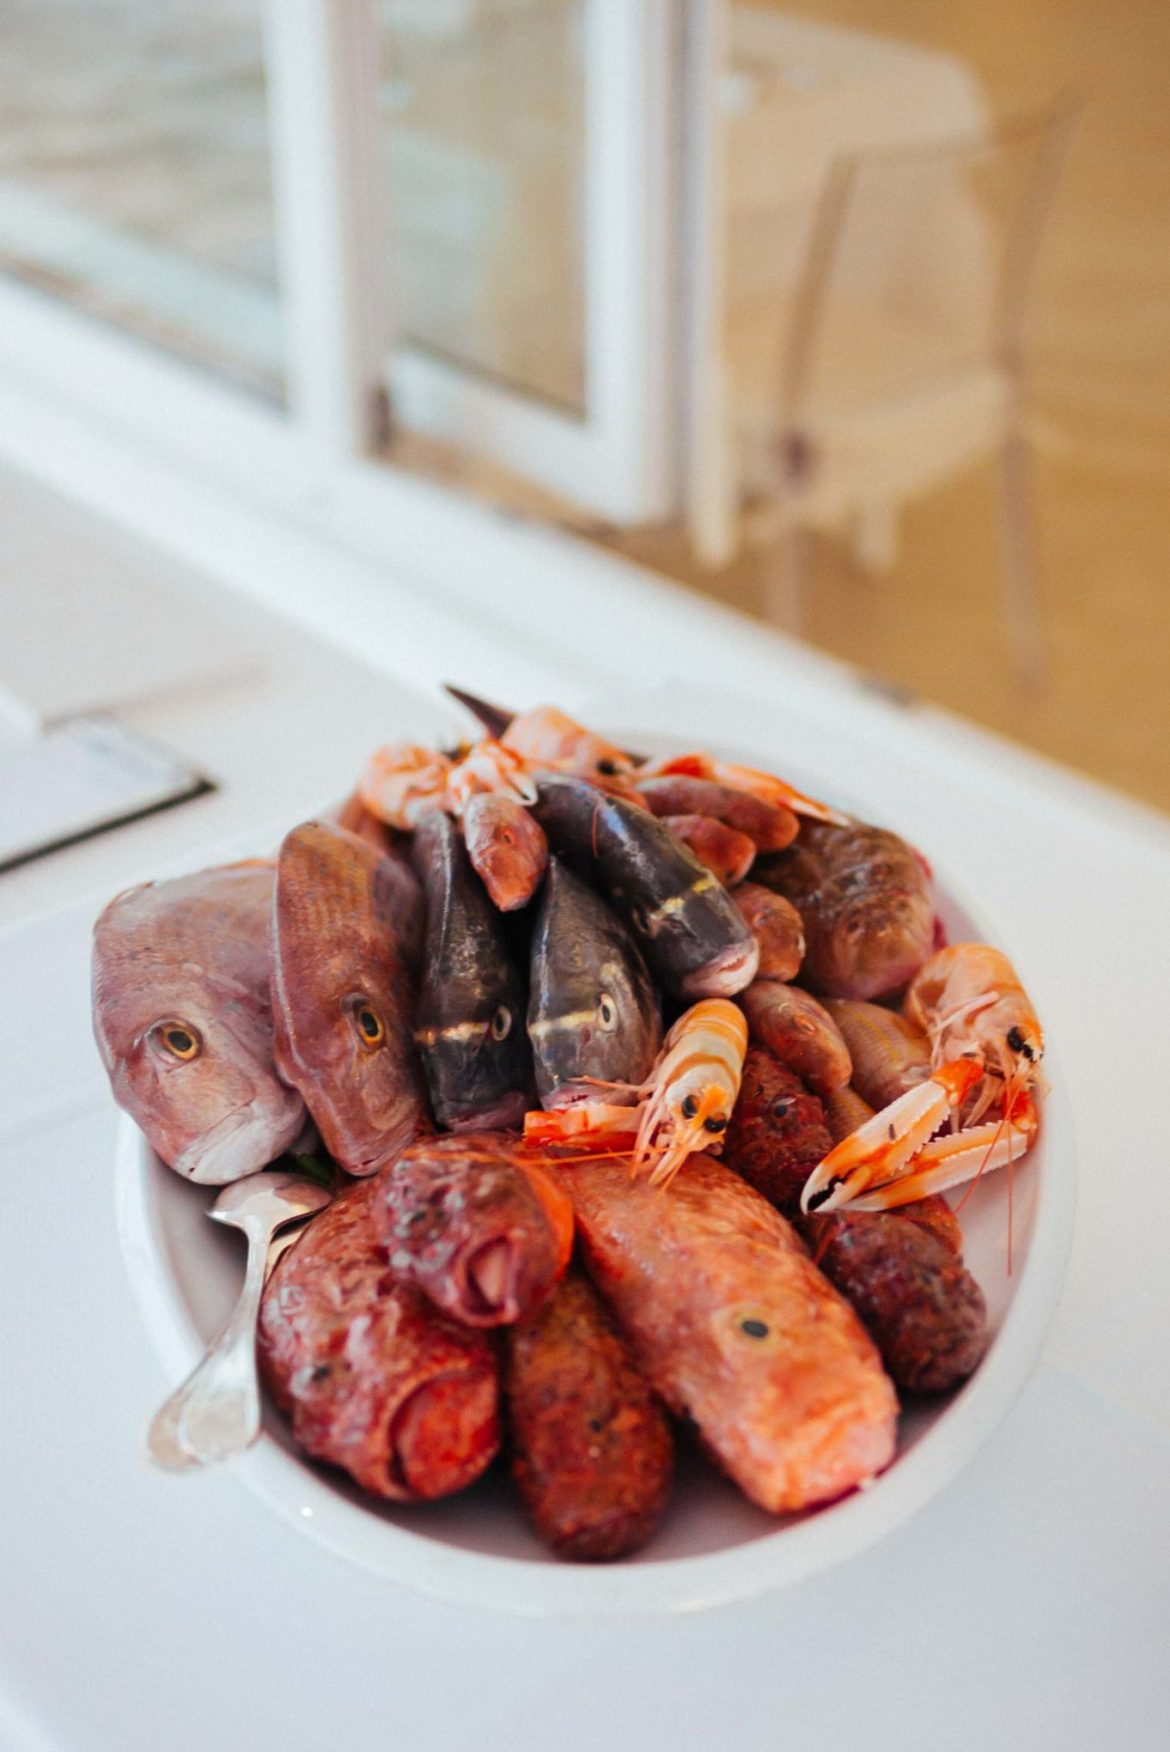 Fresh local fish and shellfish is served to order at the Sale Blu restaurant located at the luxury Puglia hotel La Peschiera  just south of Monopoli, Italy, The Taste Edit t